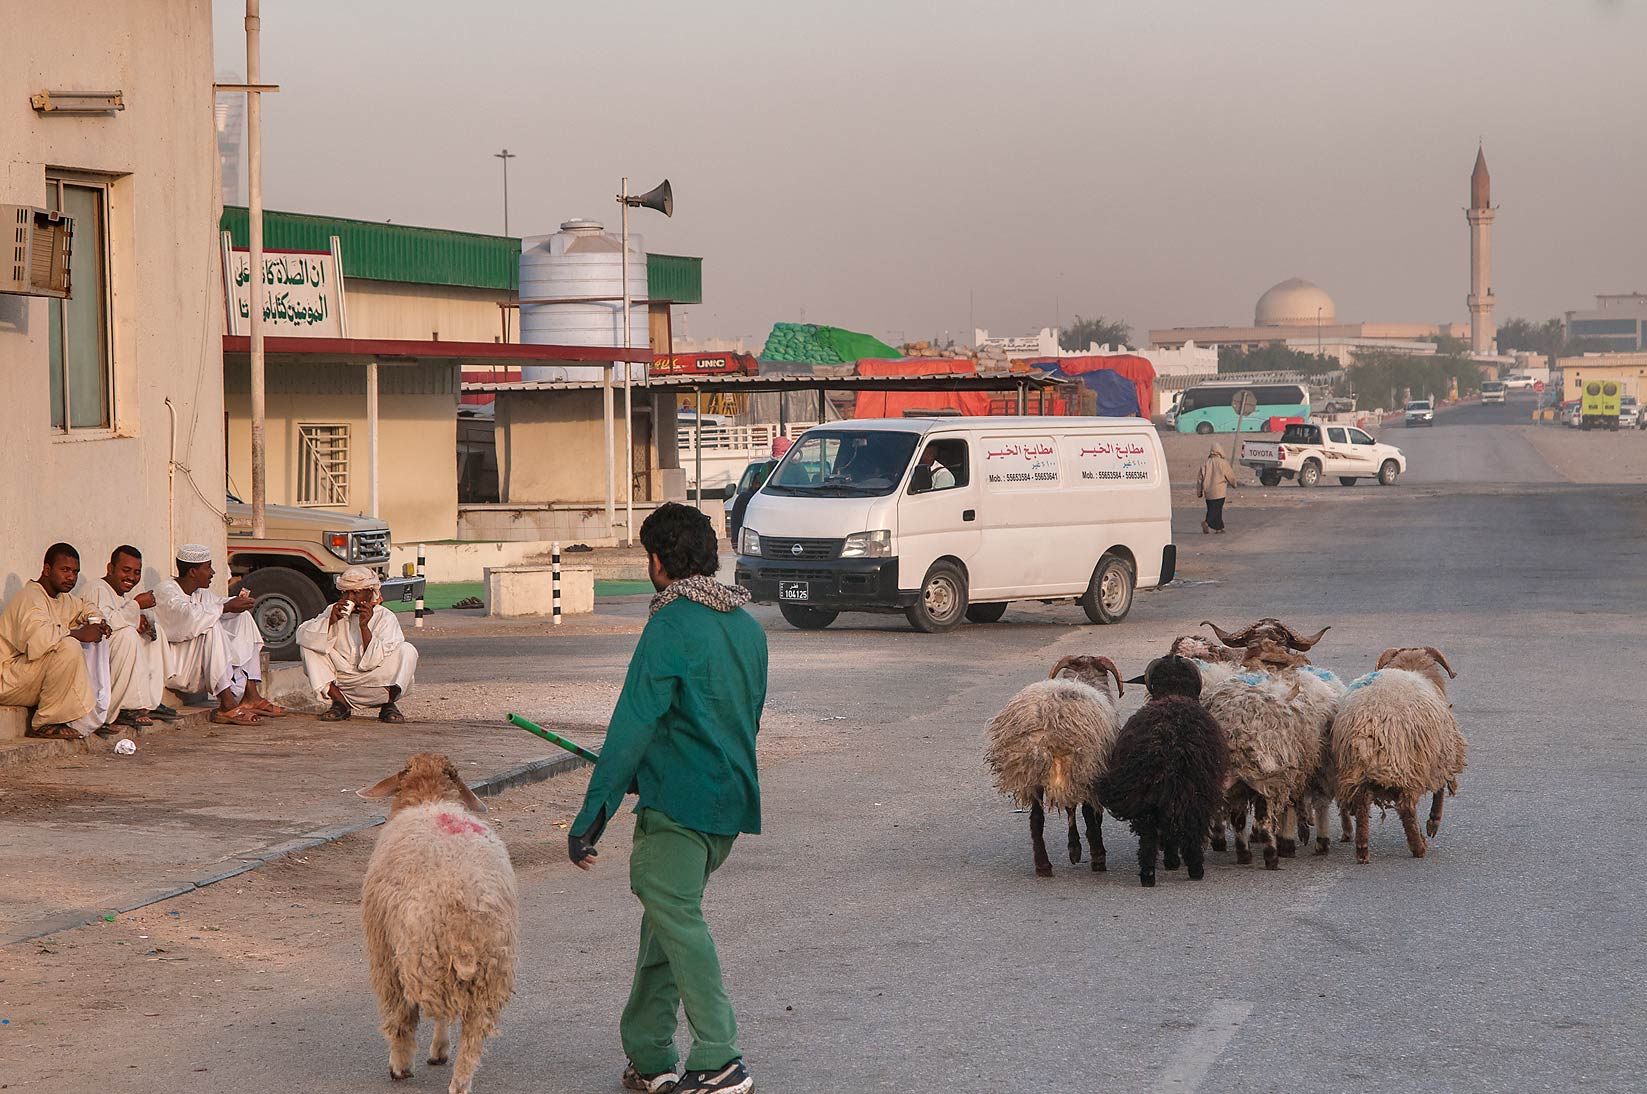 Herding sheep in Livestock Market, Wholesale Markets area. Doha, Qatar